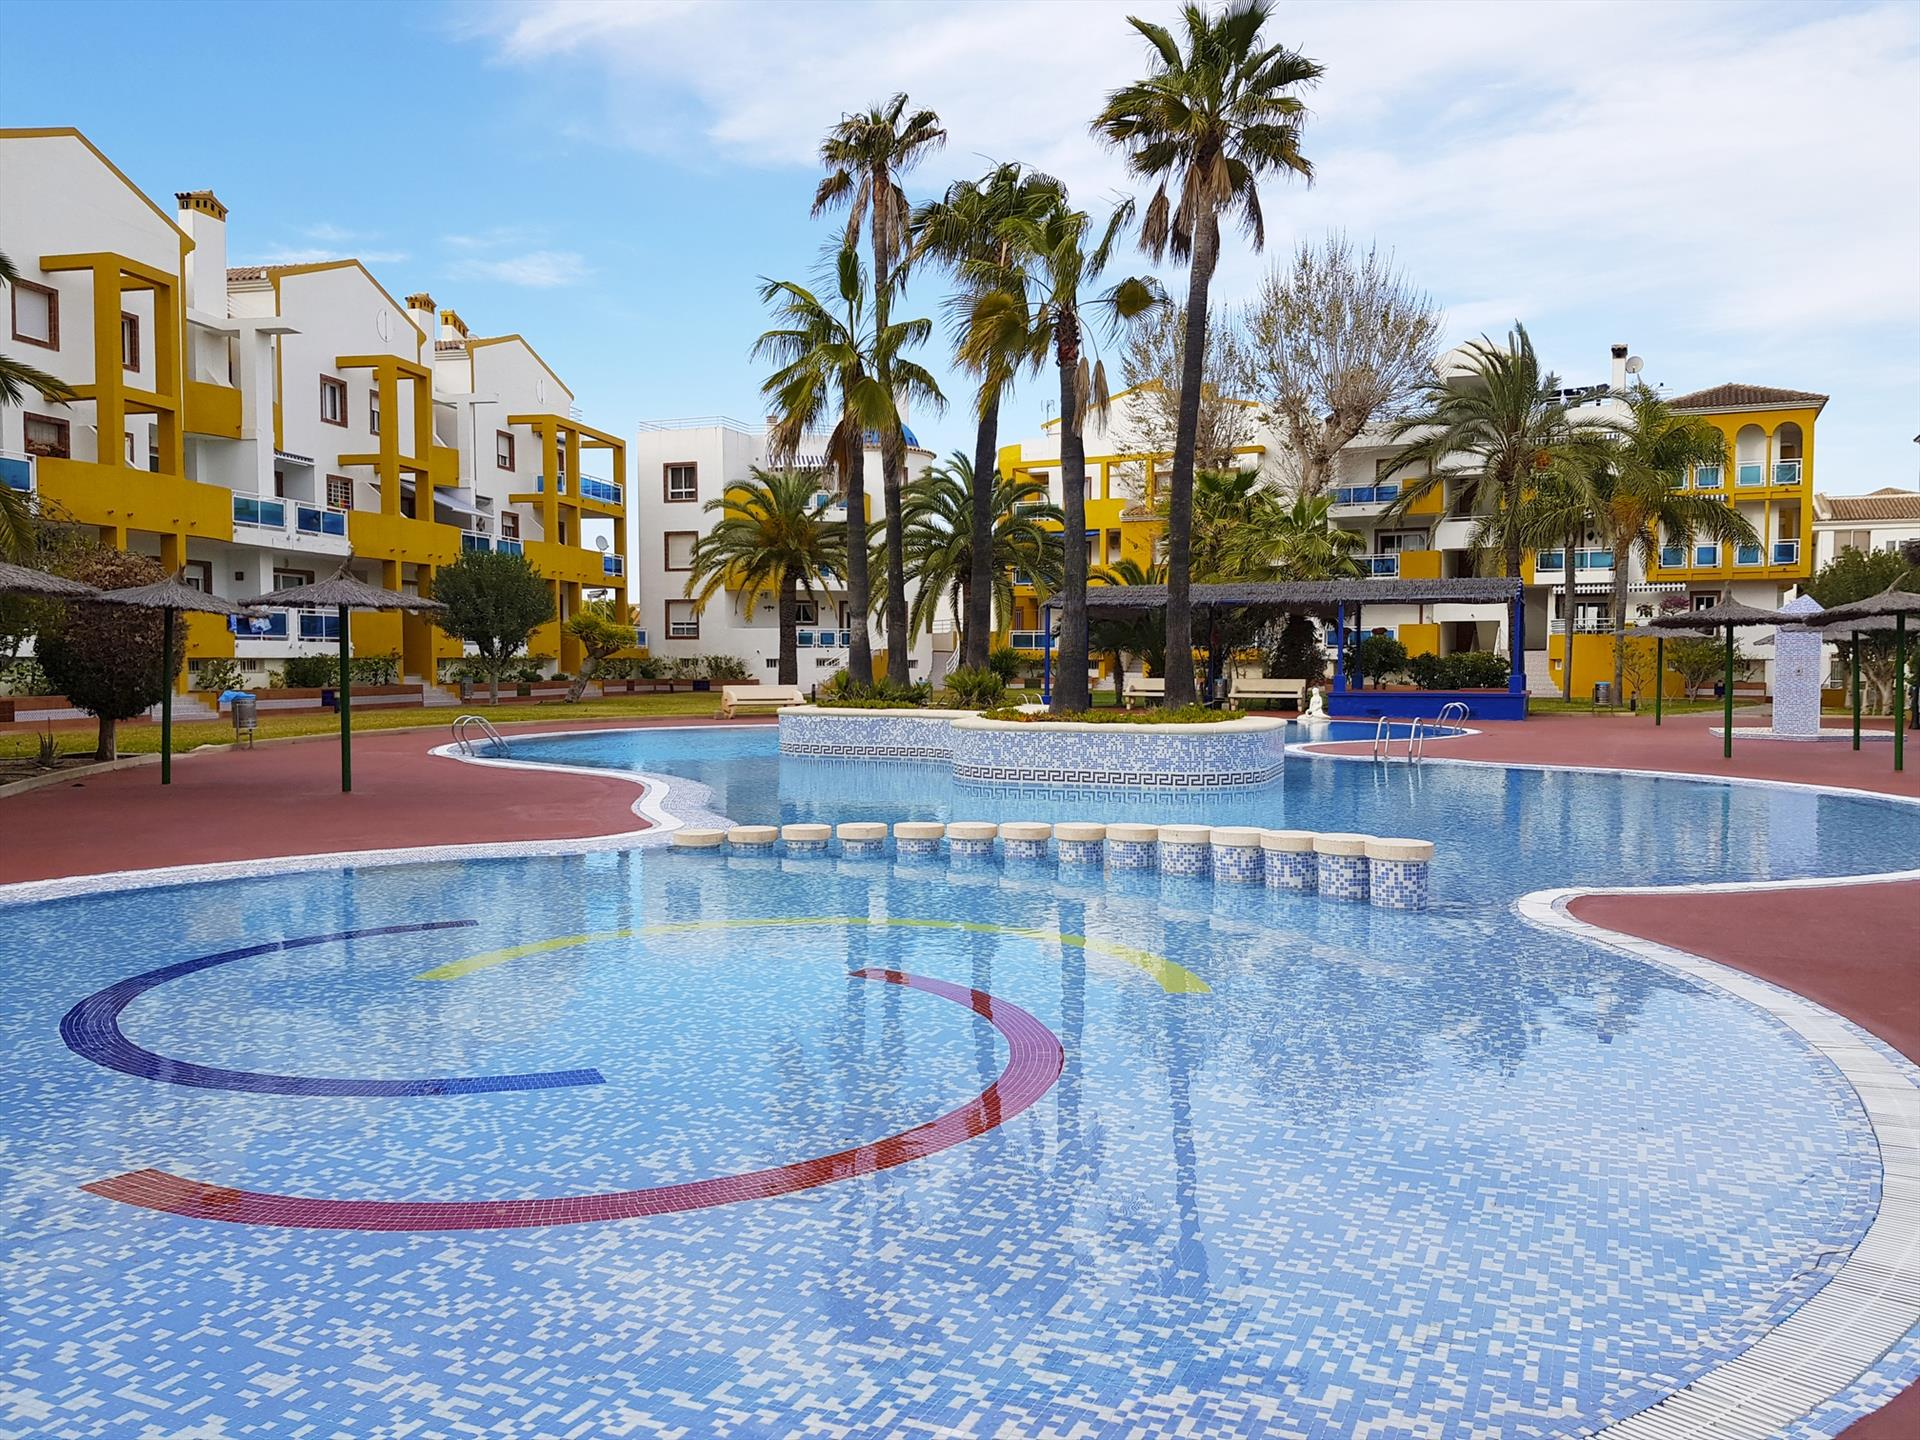 AP101 San Fernando con gran zona común y piscina, Beautiful and romantic apartment in Oliva, on the Costa Blanca, Spain  with communal pool for 4 persons.....